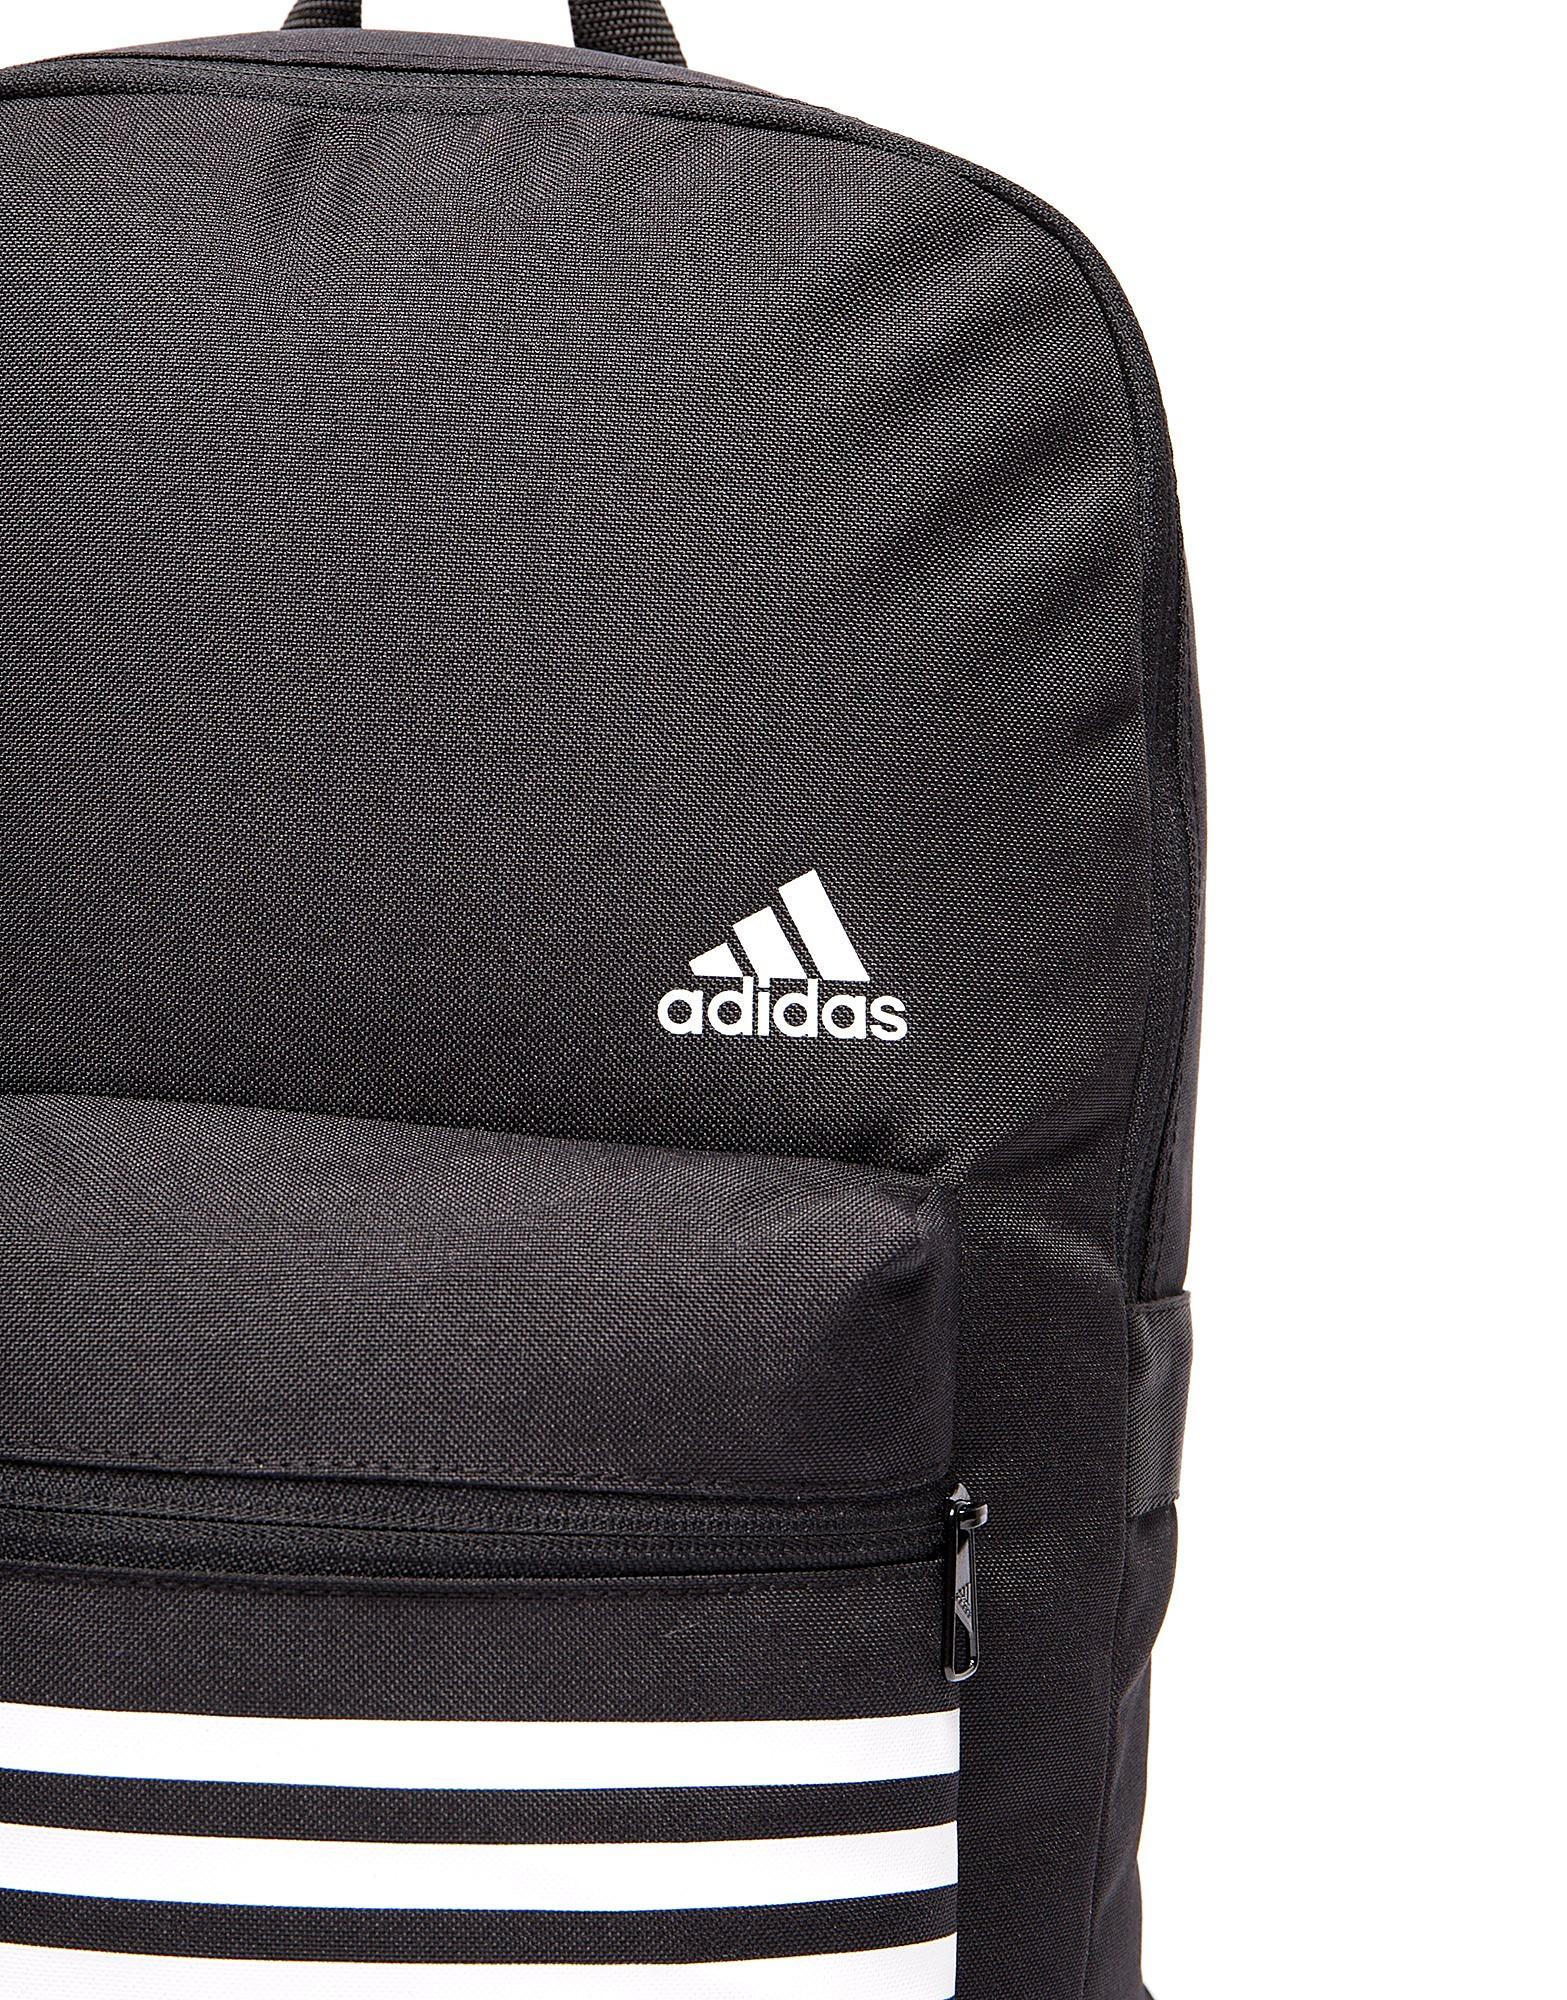 adidas Versatile Backpack